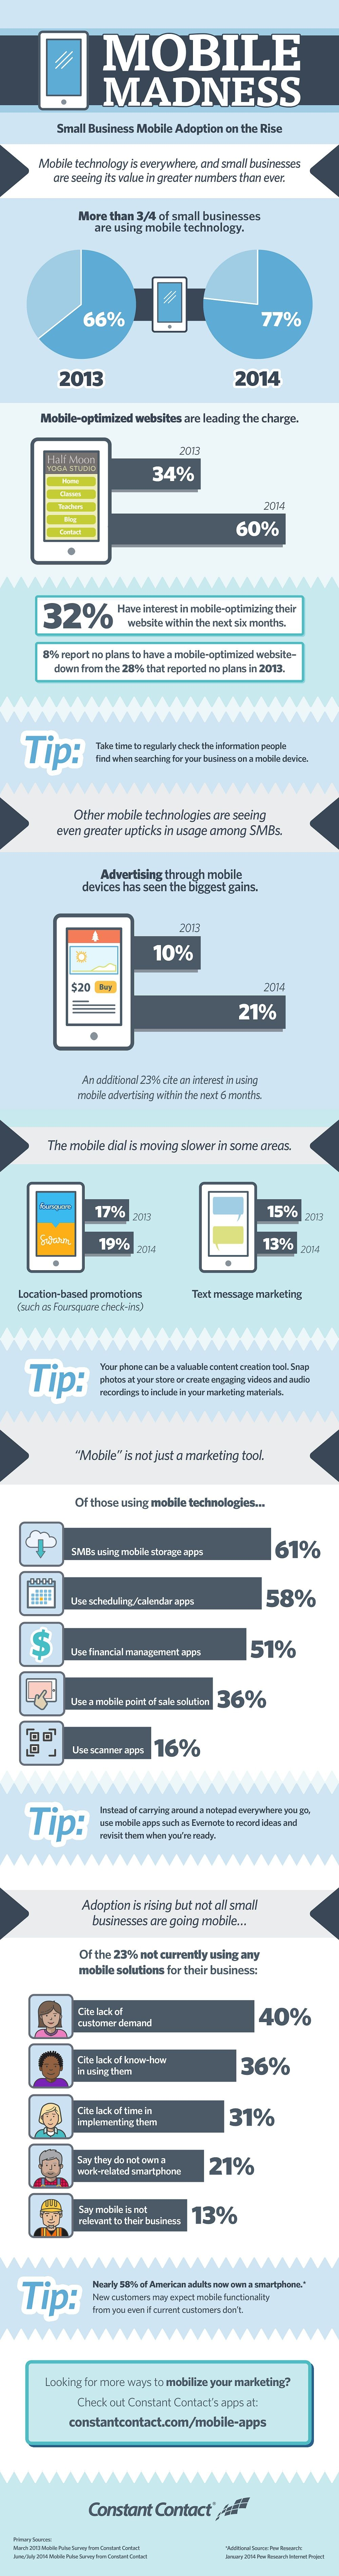 Small Business Mobile Adoption on the Rise